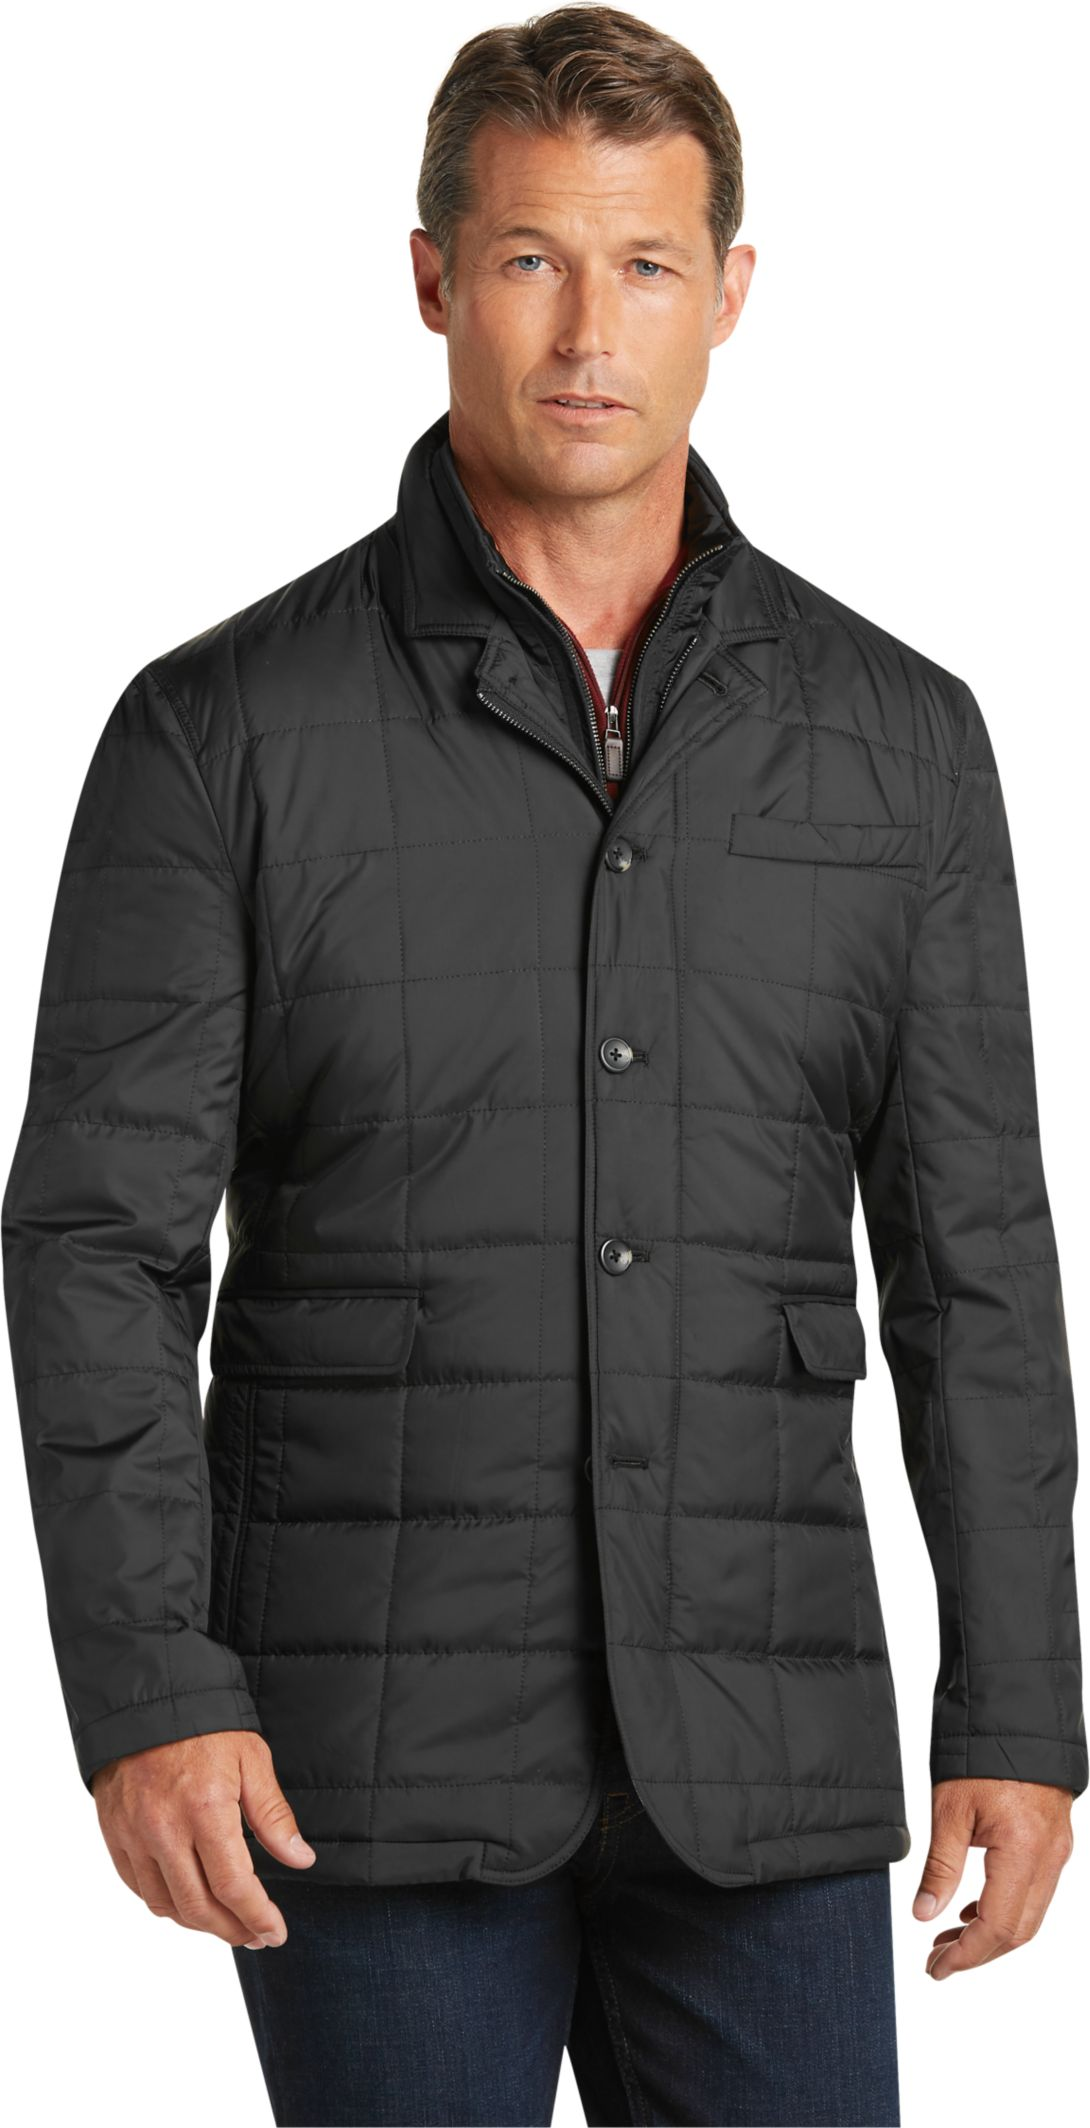 Get Jos. A. Bank Men's Johnson Quilted Jacket only $50 plus Free Shipping